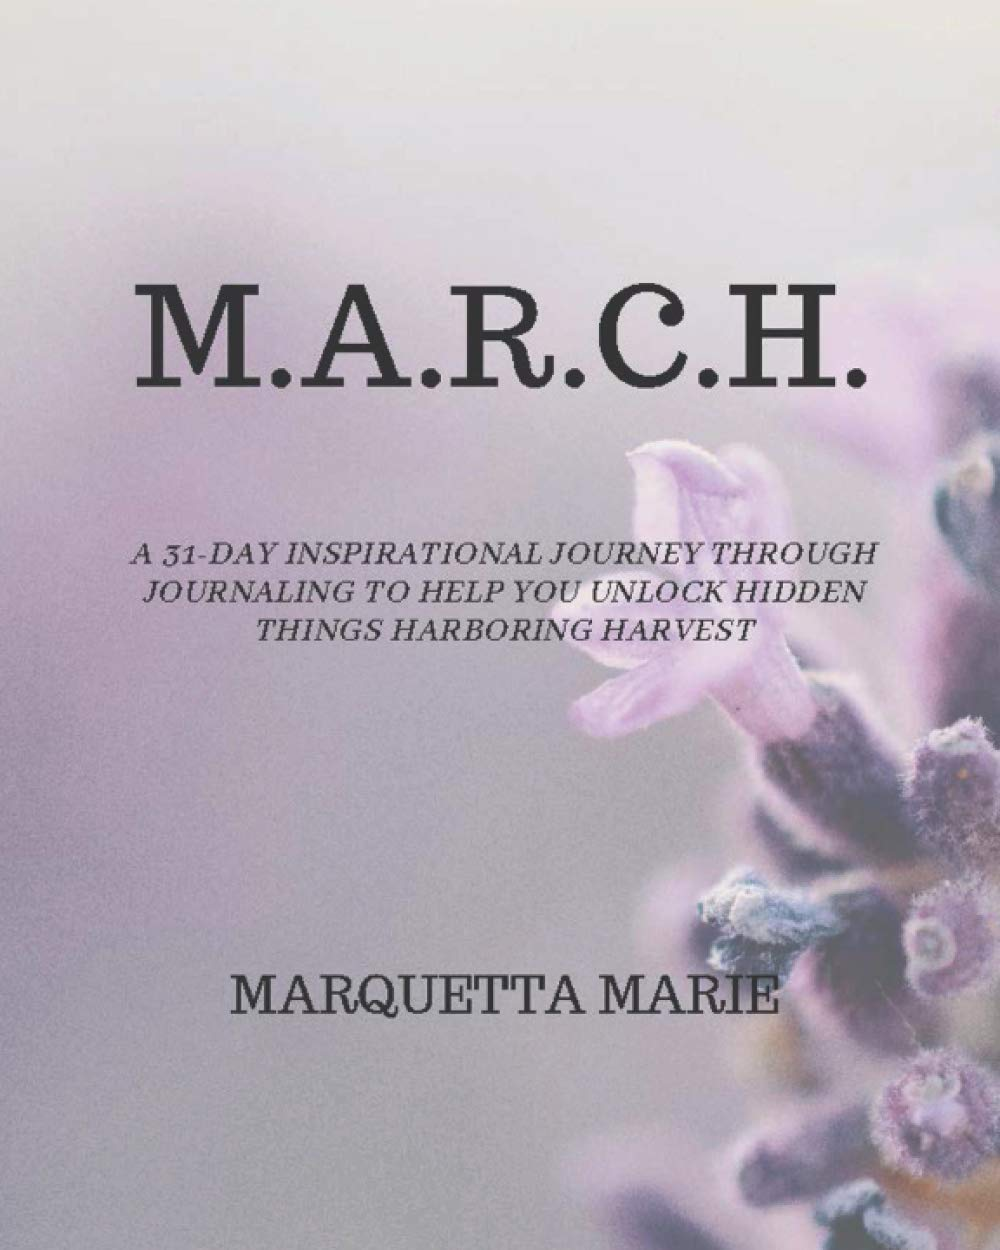 M.A.R.C.H.: A 31-day inspirational adventure via journaling that will help you free up hidden issues harboring harvest